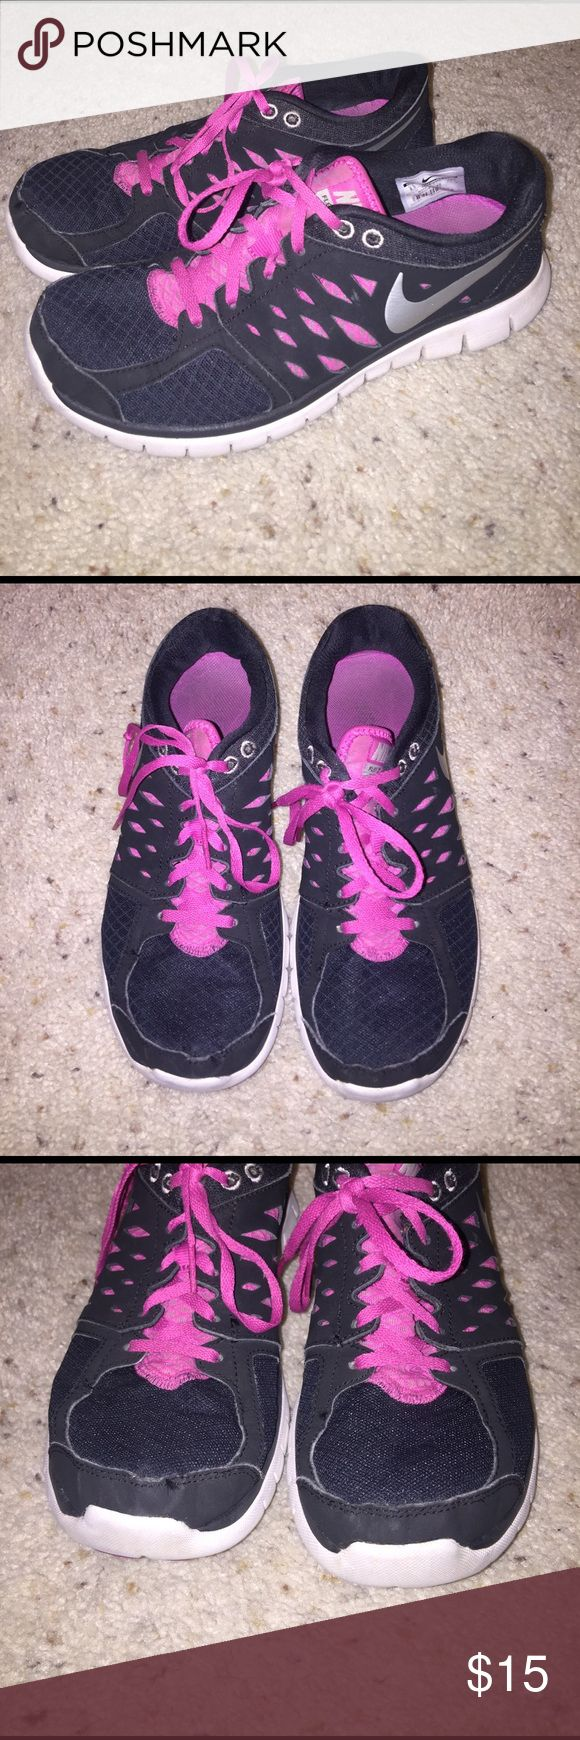 Women's 8.5 Nike Flex Run 2013 Worn a lot. Have scuff marks in the front but no tears (picture included) bottom of both shoes are still in tact. Just the best for working out! Nike Shoes Sneakers